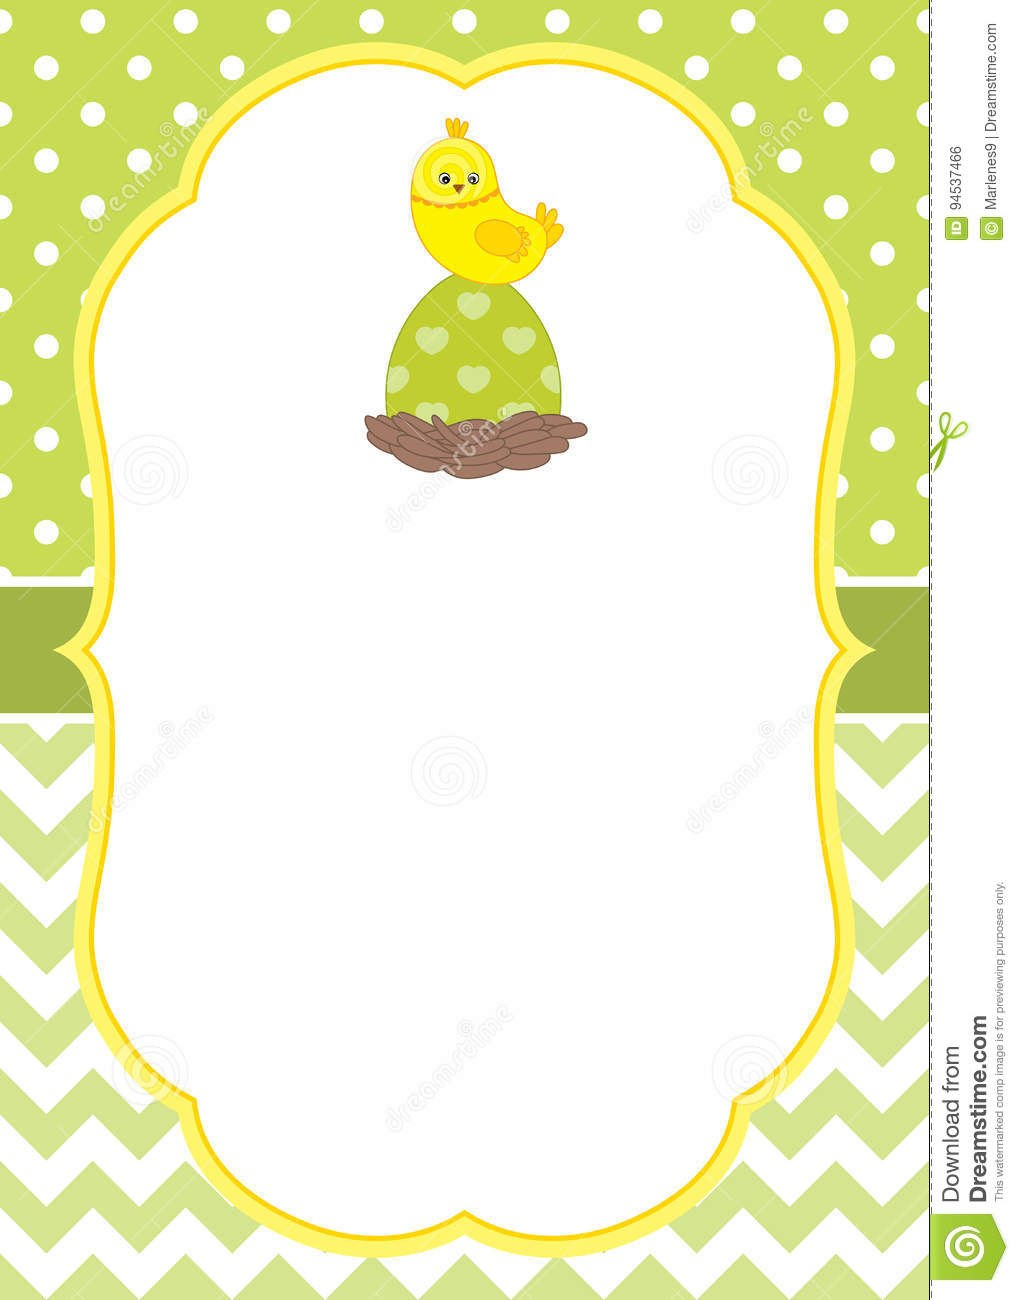 Vector Card Template With A Cute Chick On Polka Dot And Chevron For Easter Chick Card Template